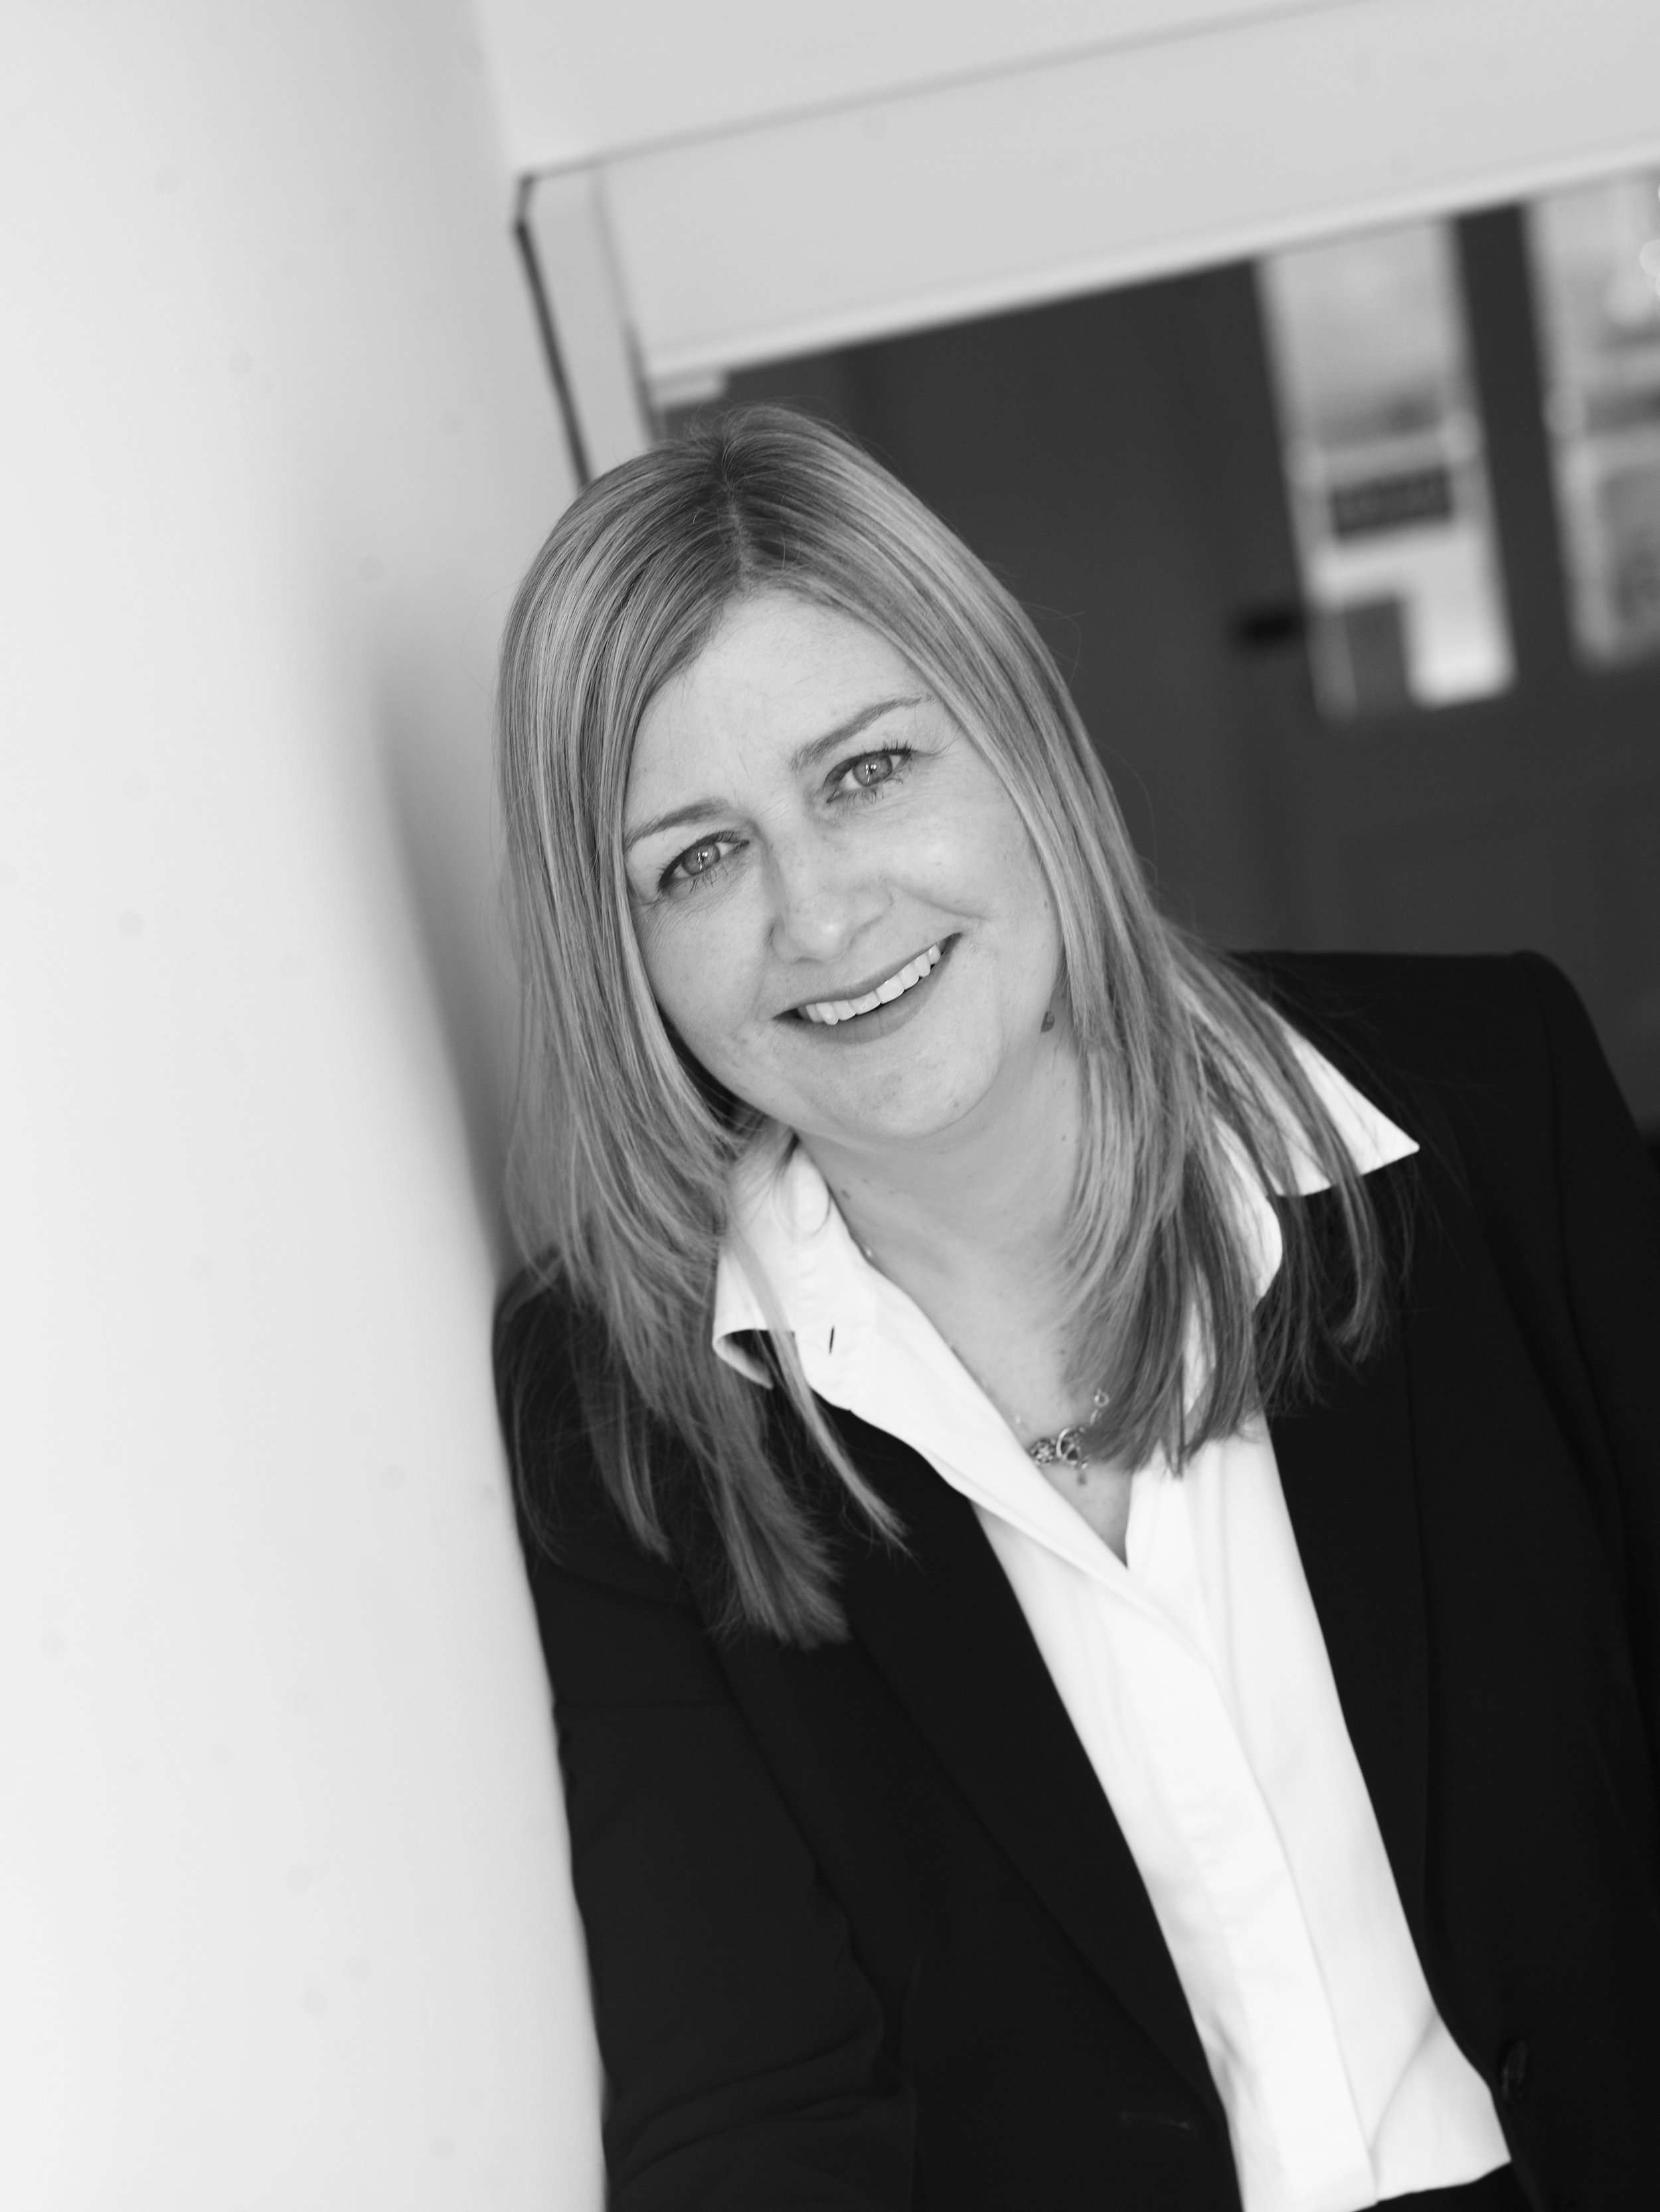 Sarah Jones, Partner and Head of the Family Department at Farnfields in Dorset offers mediation and legal services.